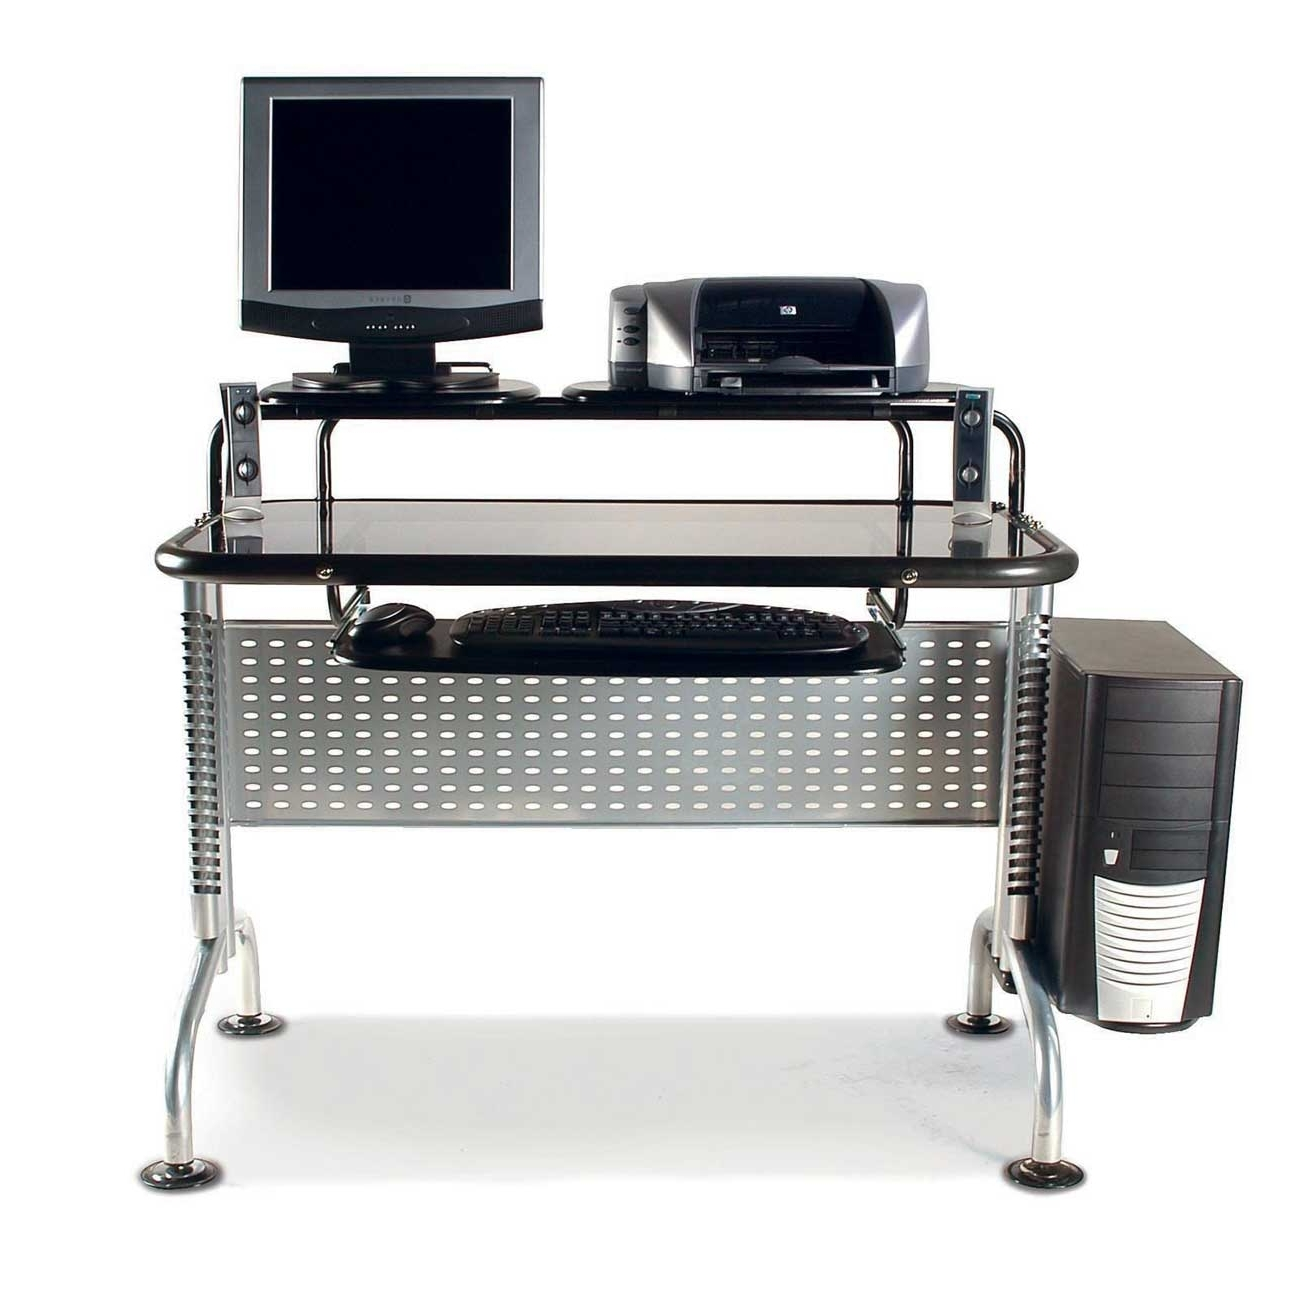 Favorite Captivating Ideas Ergonomic Computer Desk With Keyboard Tray Throughout Computer Desks Ergonomic For Home (View 9 of 20)